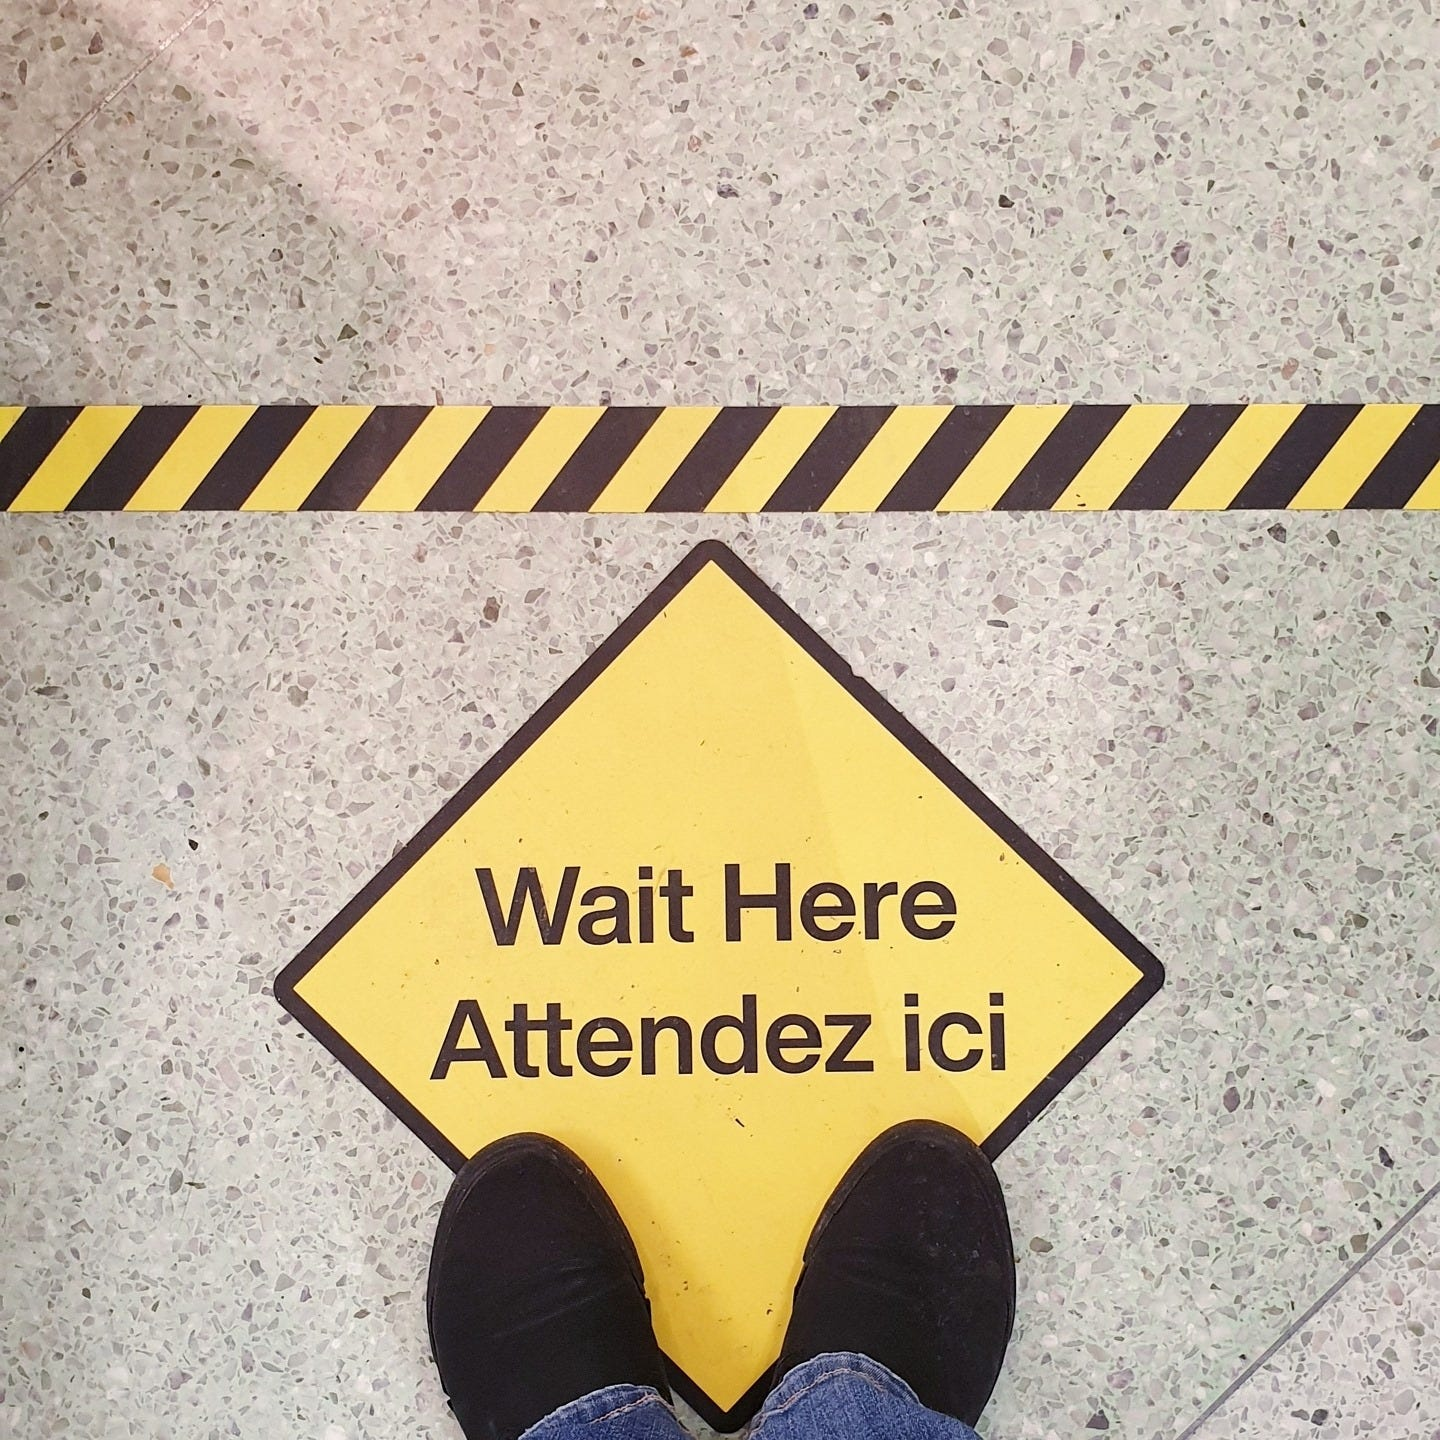 """A shot of the ground with a yellow tape to make the start of the queue line and a yellow rhombus with the phrase """"Wait here"""" in English and French."""